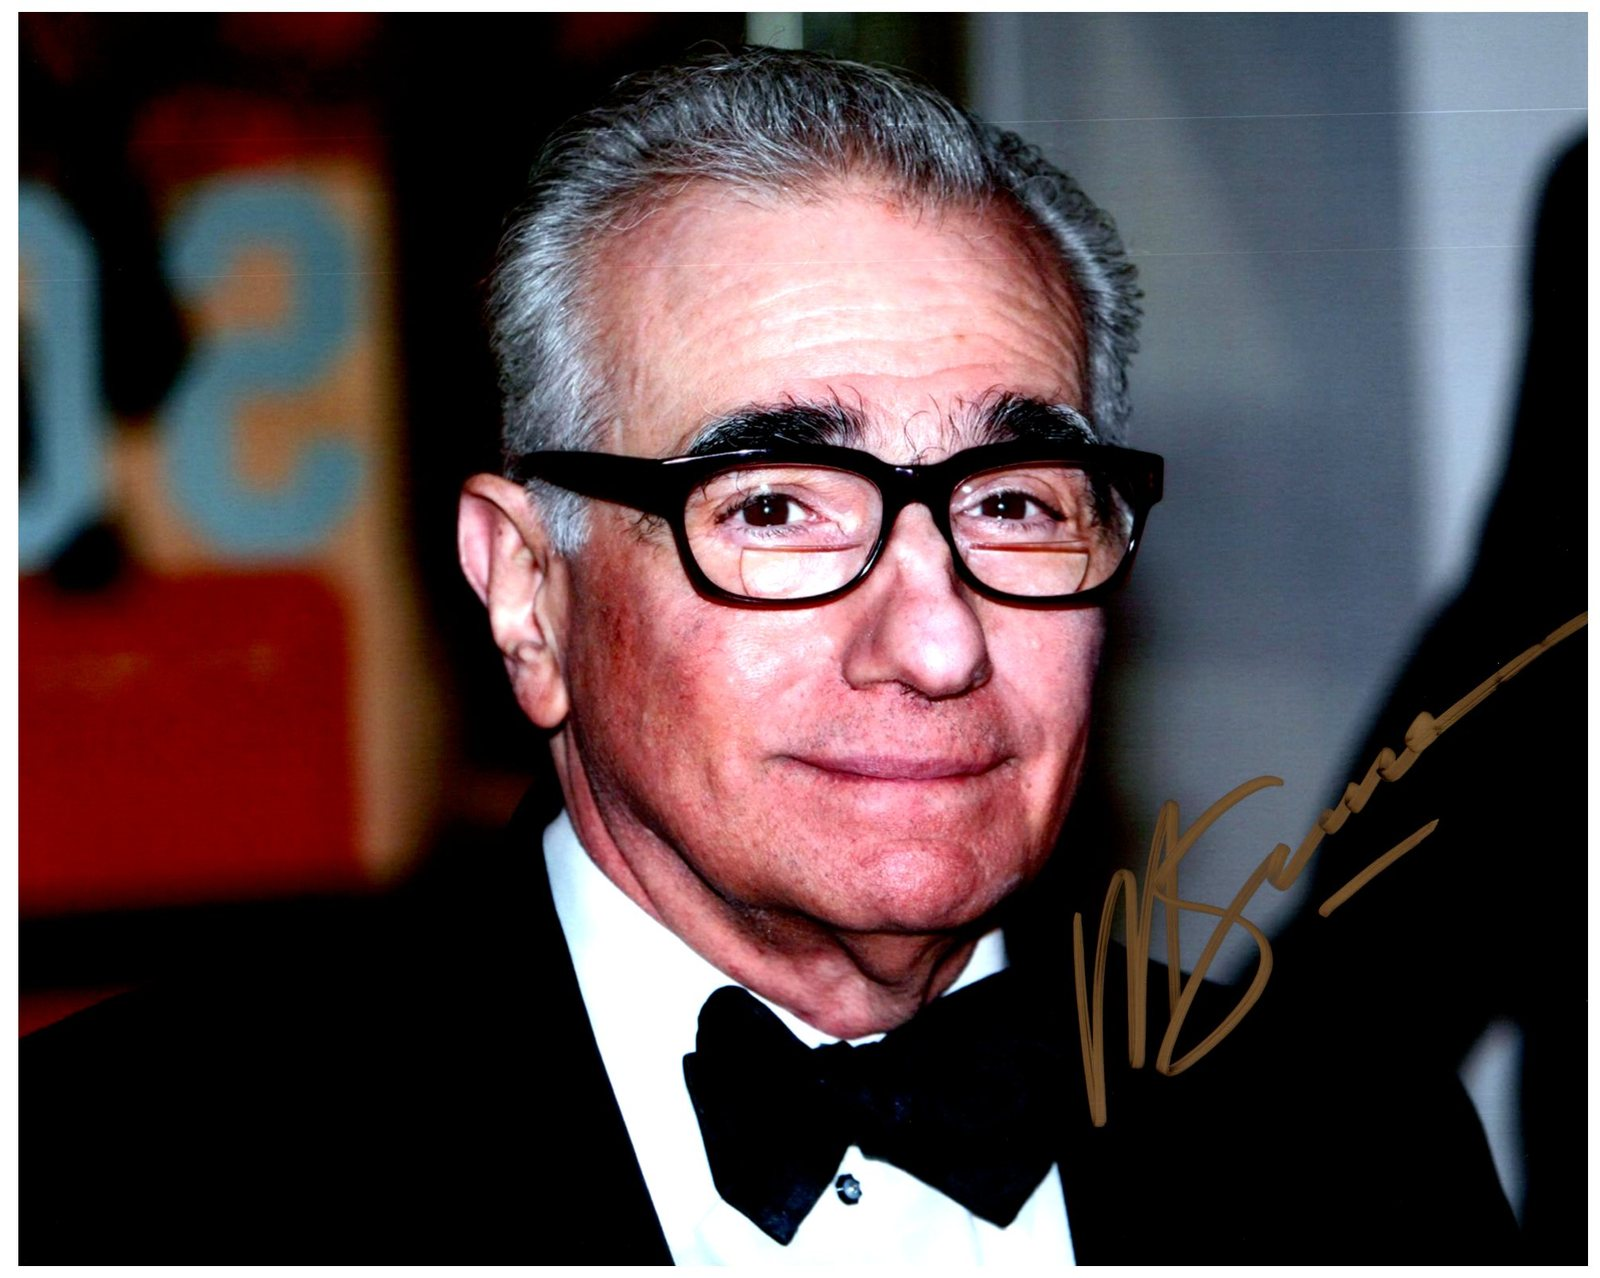 Primary image for MARTIN SCORSESE Signed Autographed 8X10 Photo w/ Certificate of Authenticity 362